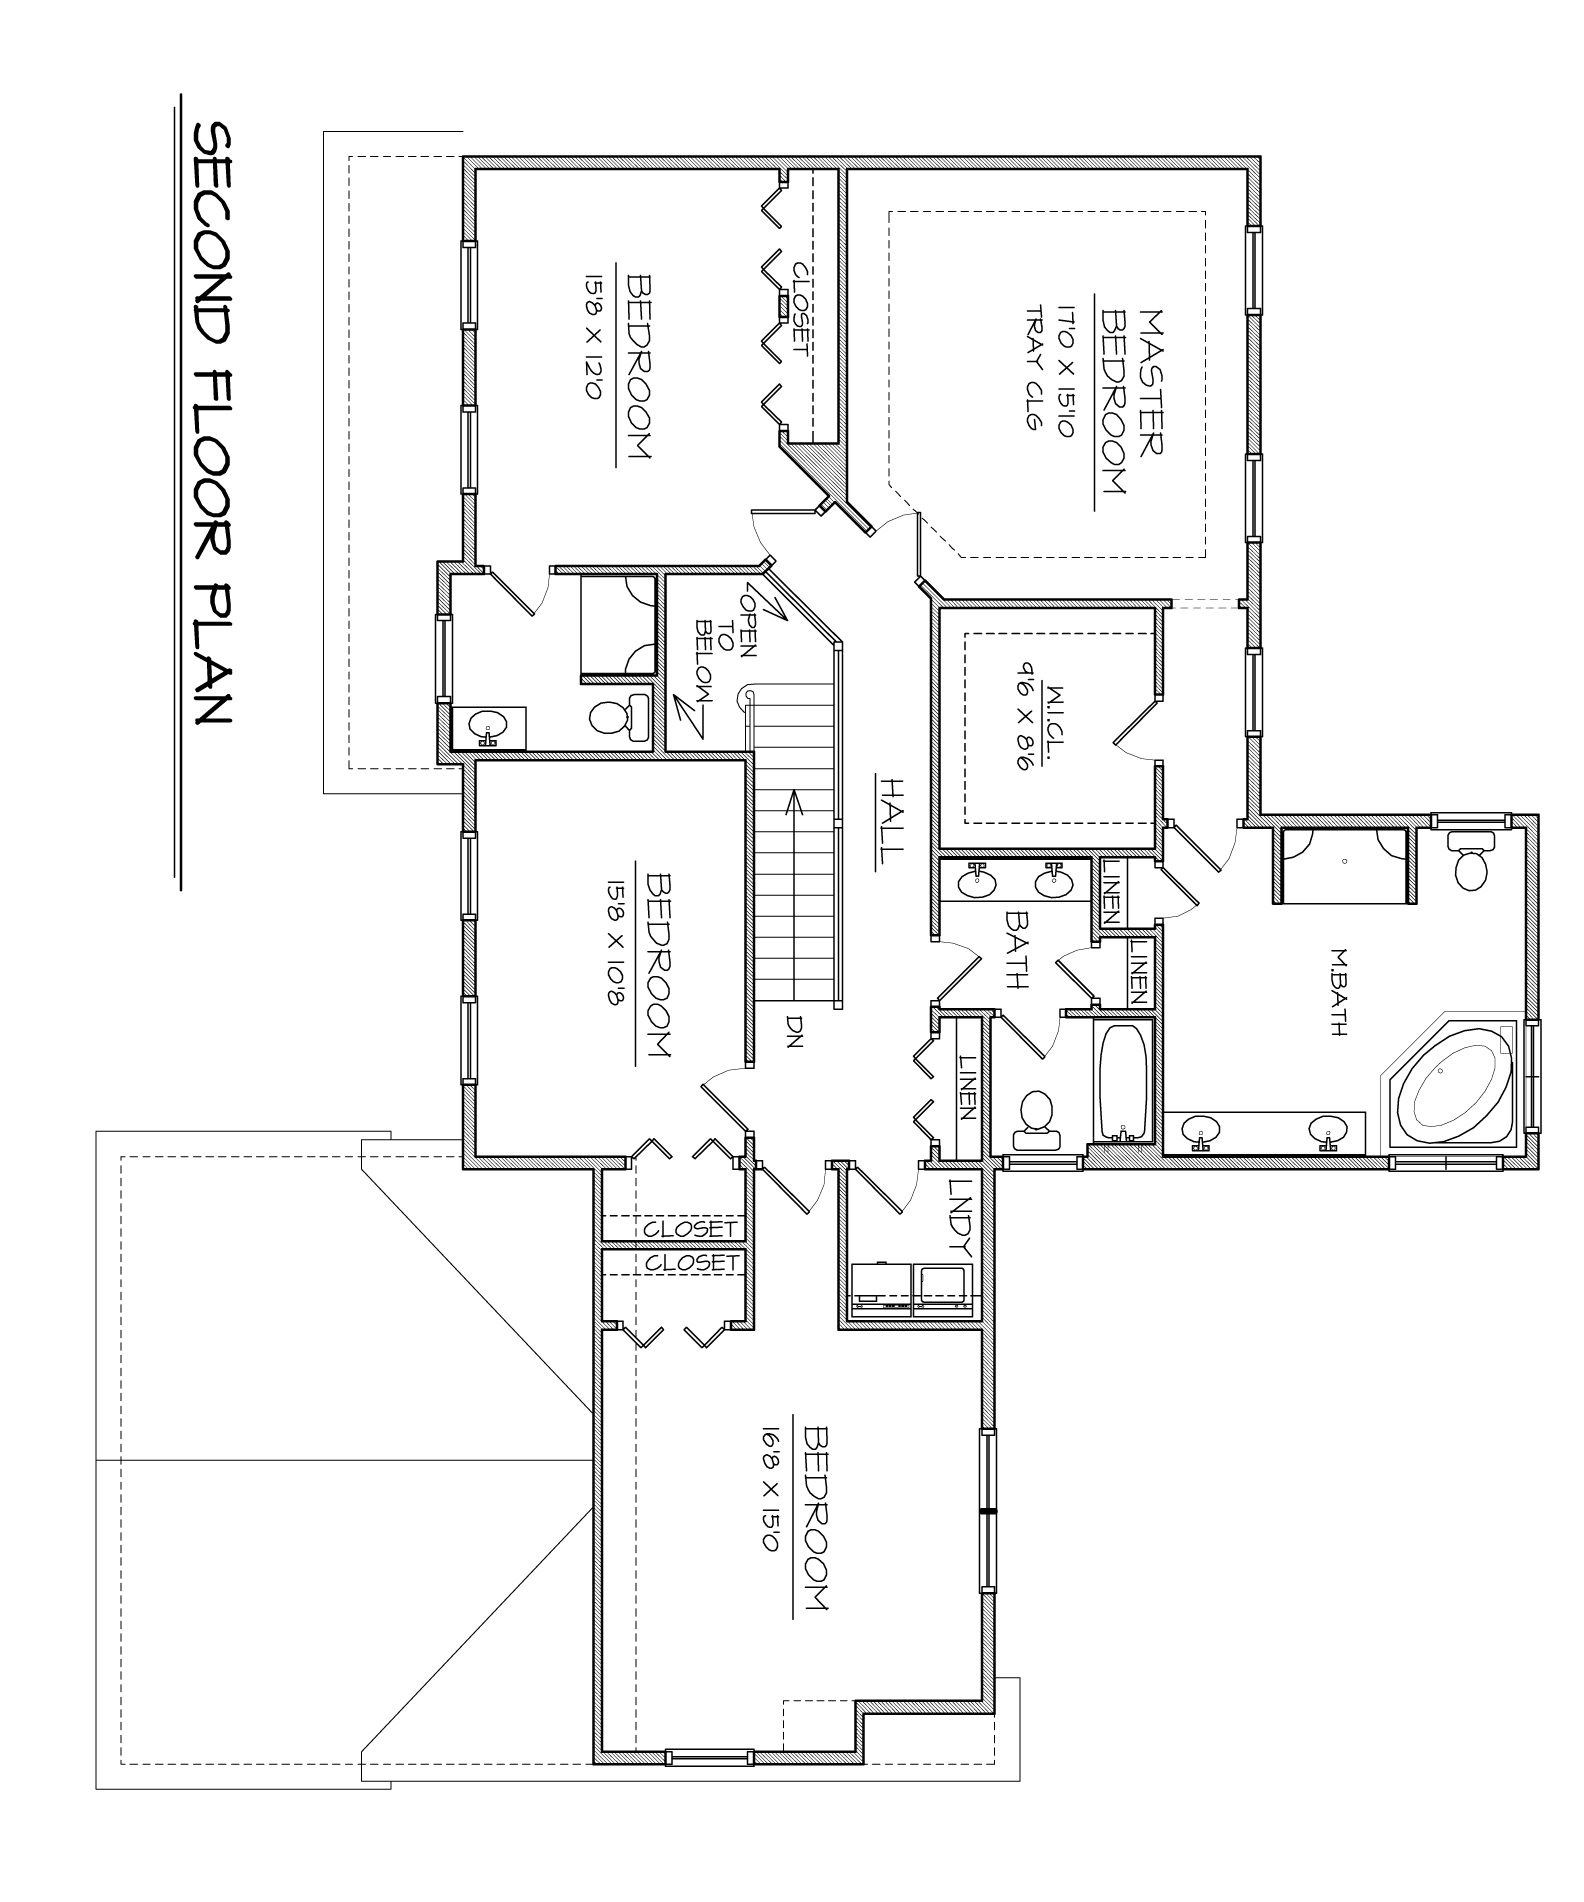 Custom home plans from great home builders in NH